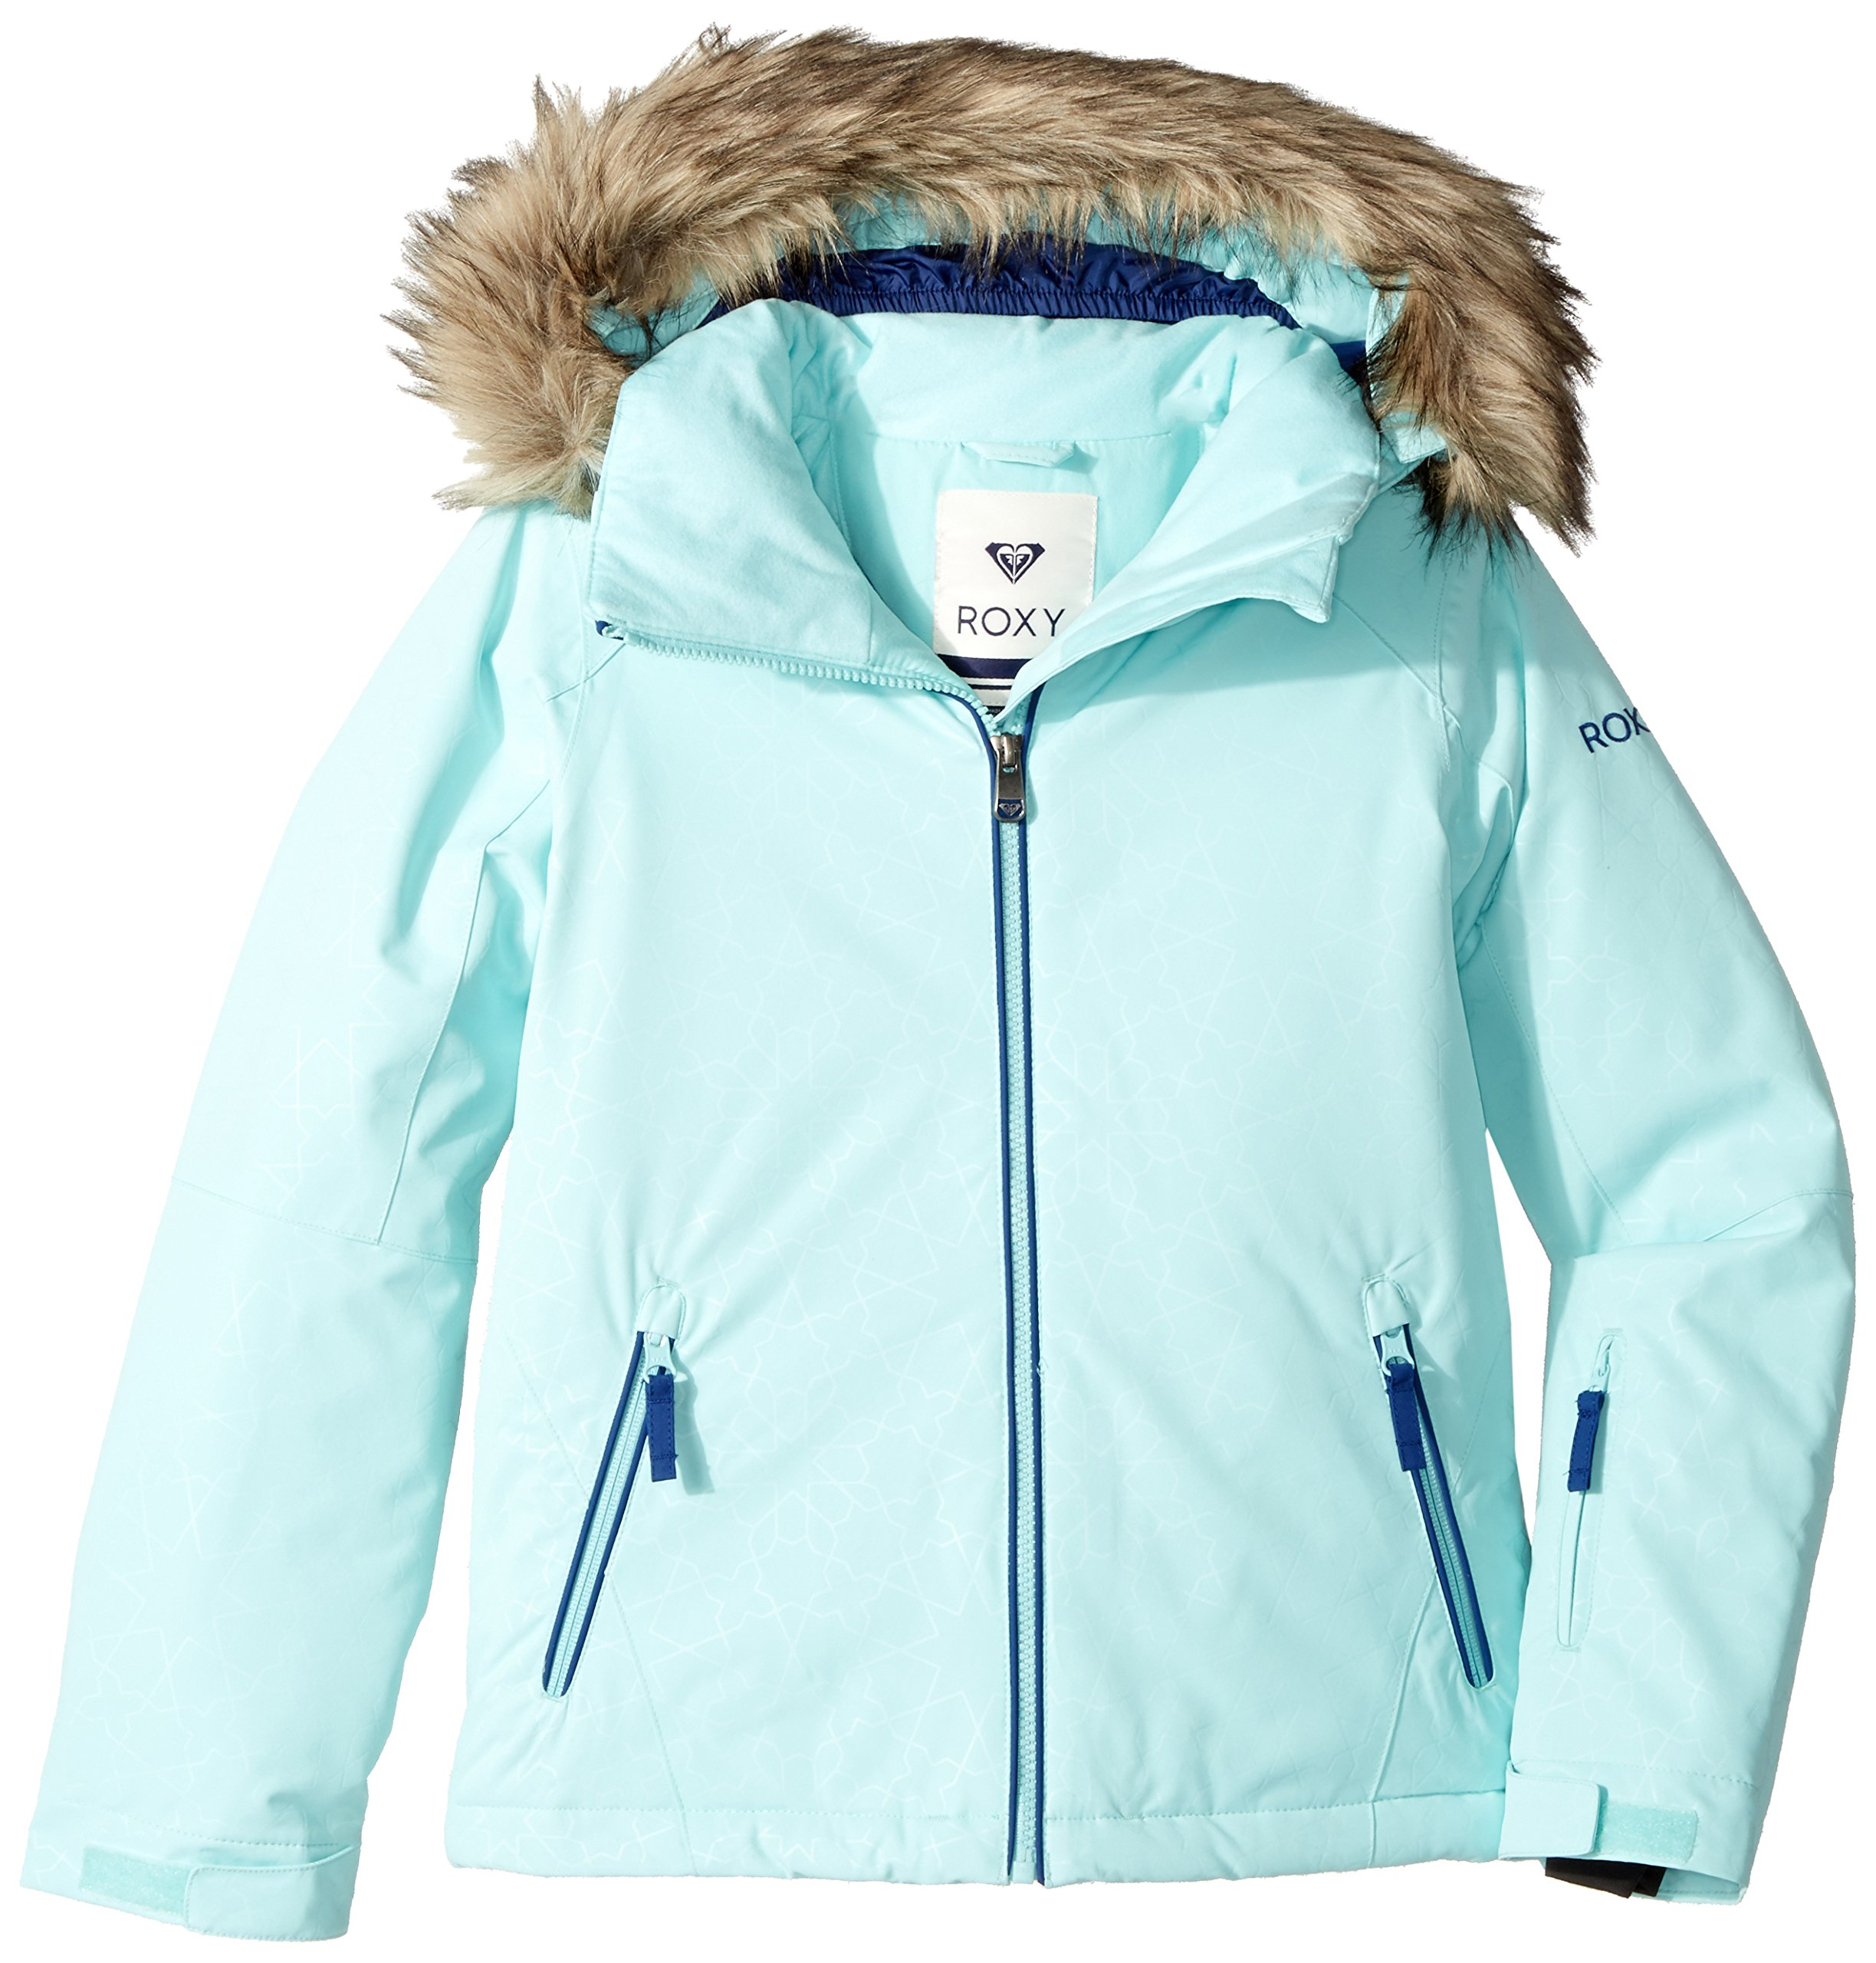 Roxy Big Girls' American Pie Solid Snow Jacket, Aruba Blue_Gana Emboss, 10/Medium by Roxy